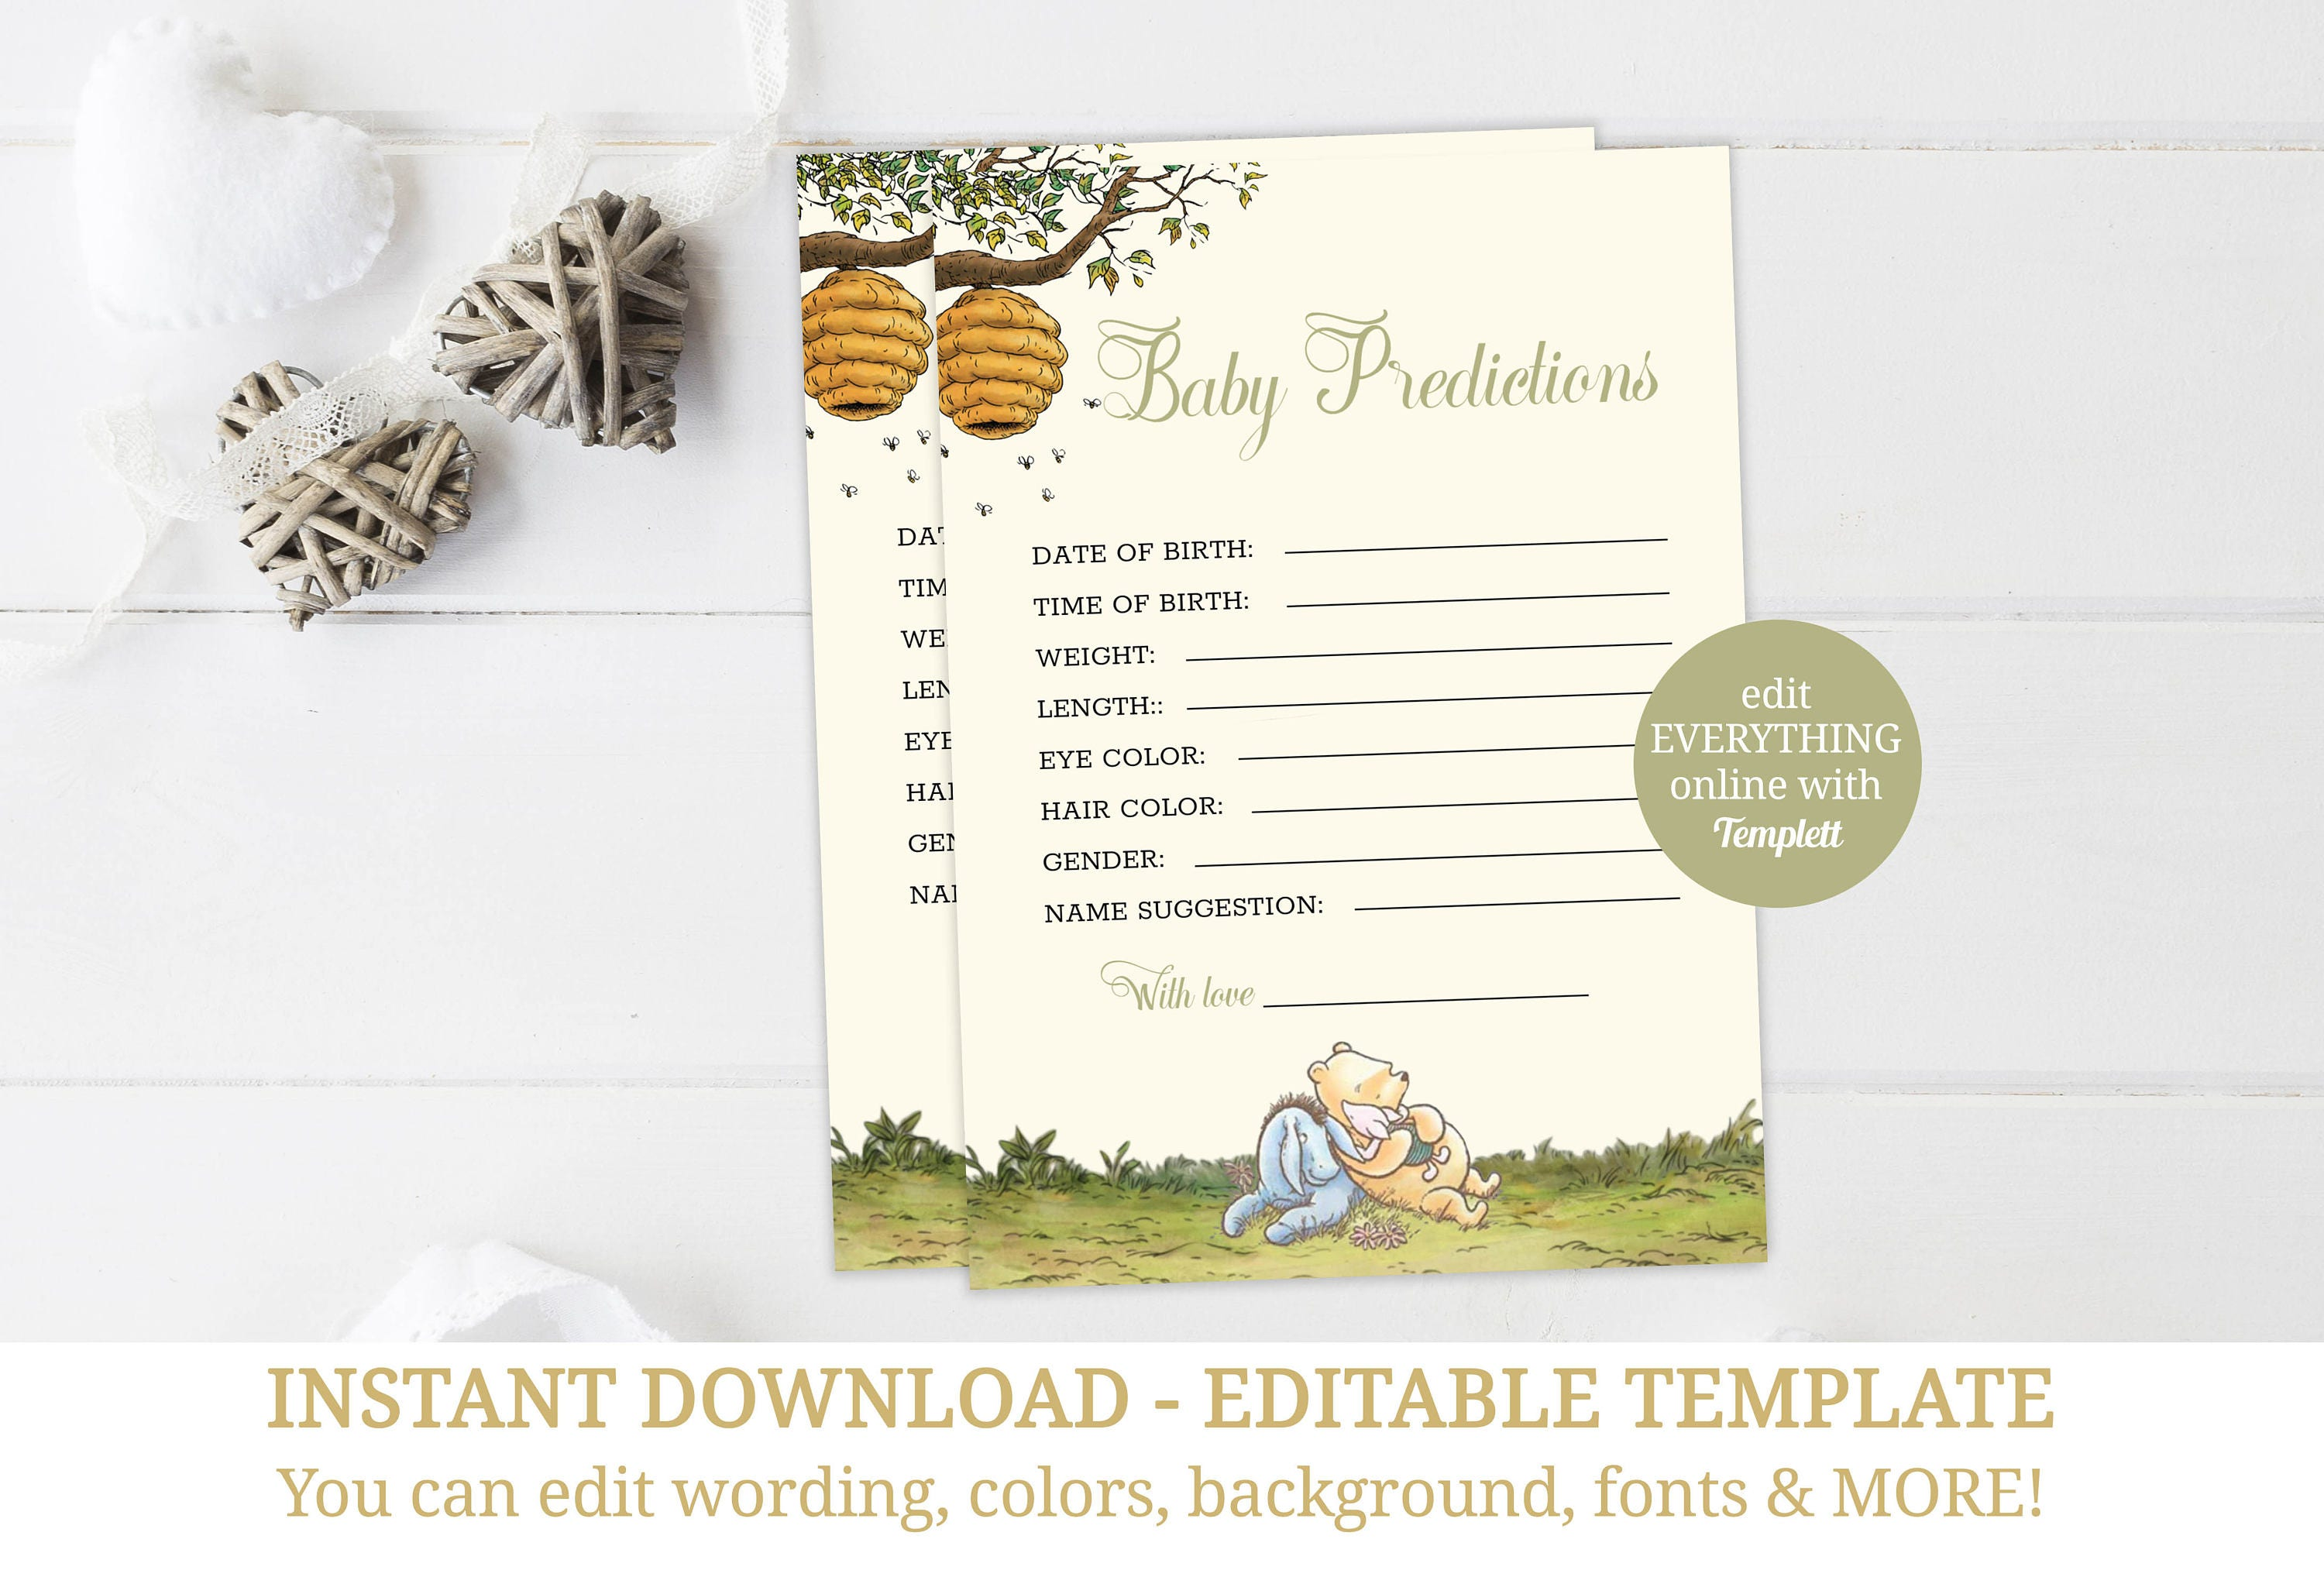 Yellow Winnie Pooh Baby Shower Baby Prediction Card, Classic Pooh ...